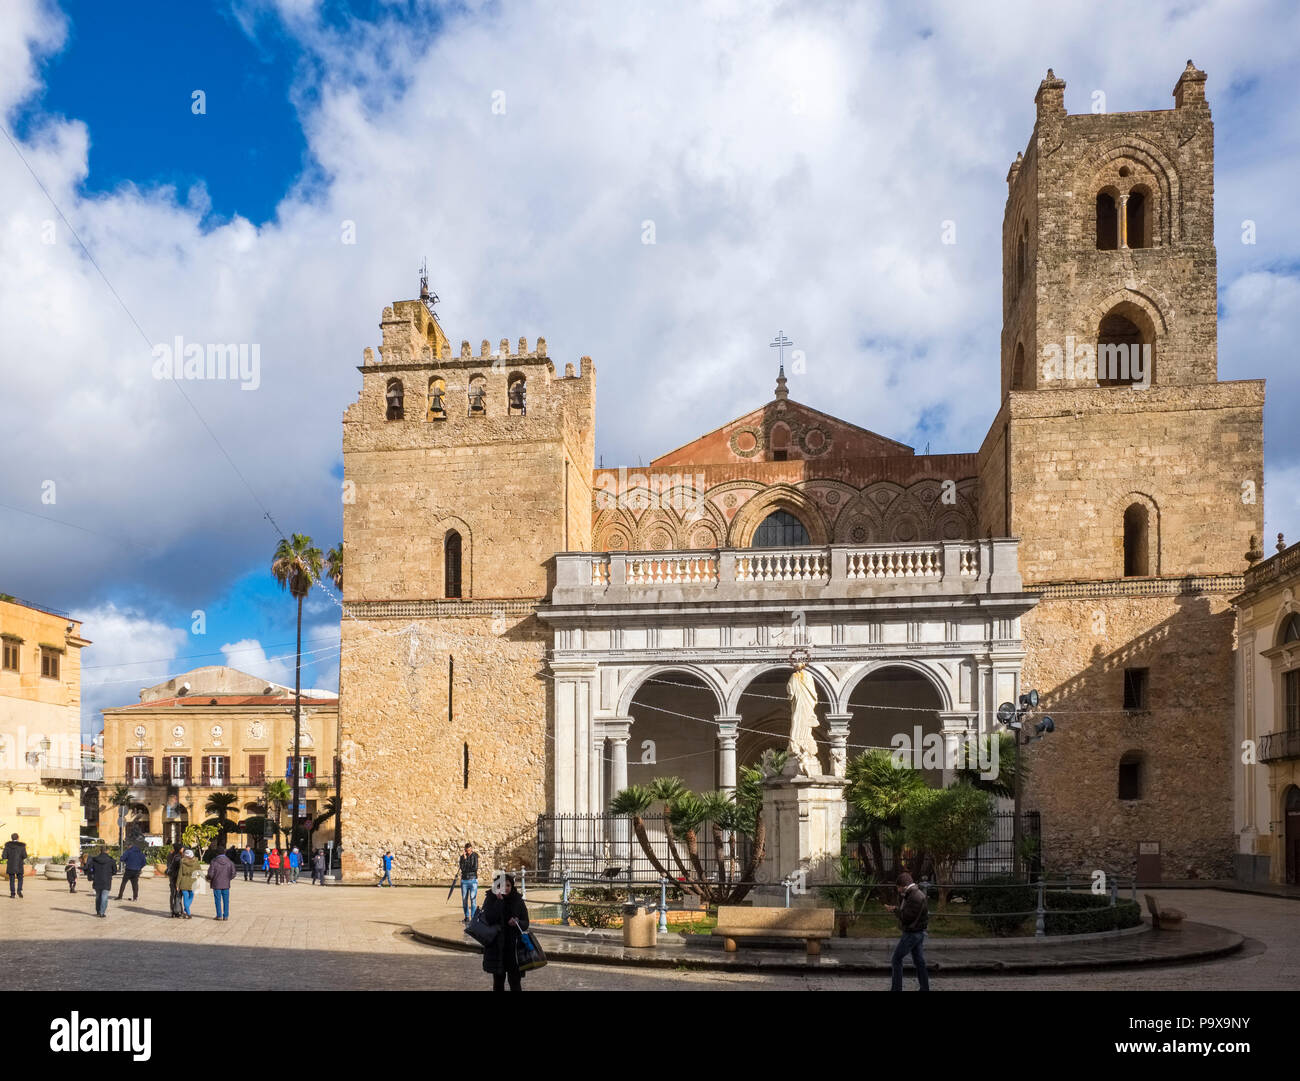 The Arab-Norman Cathedral in Monreale, Sicily, Italy, Europe Stock Photo